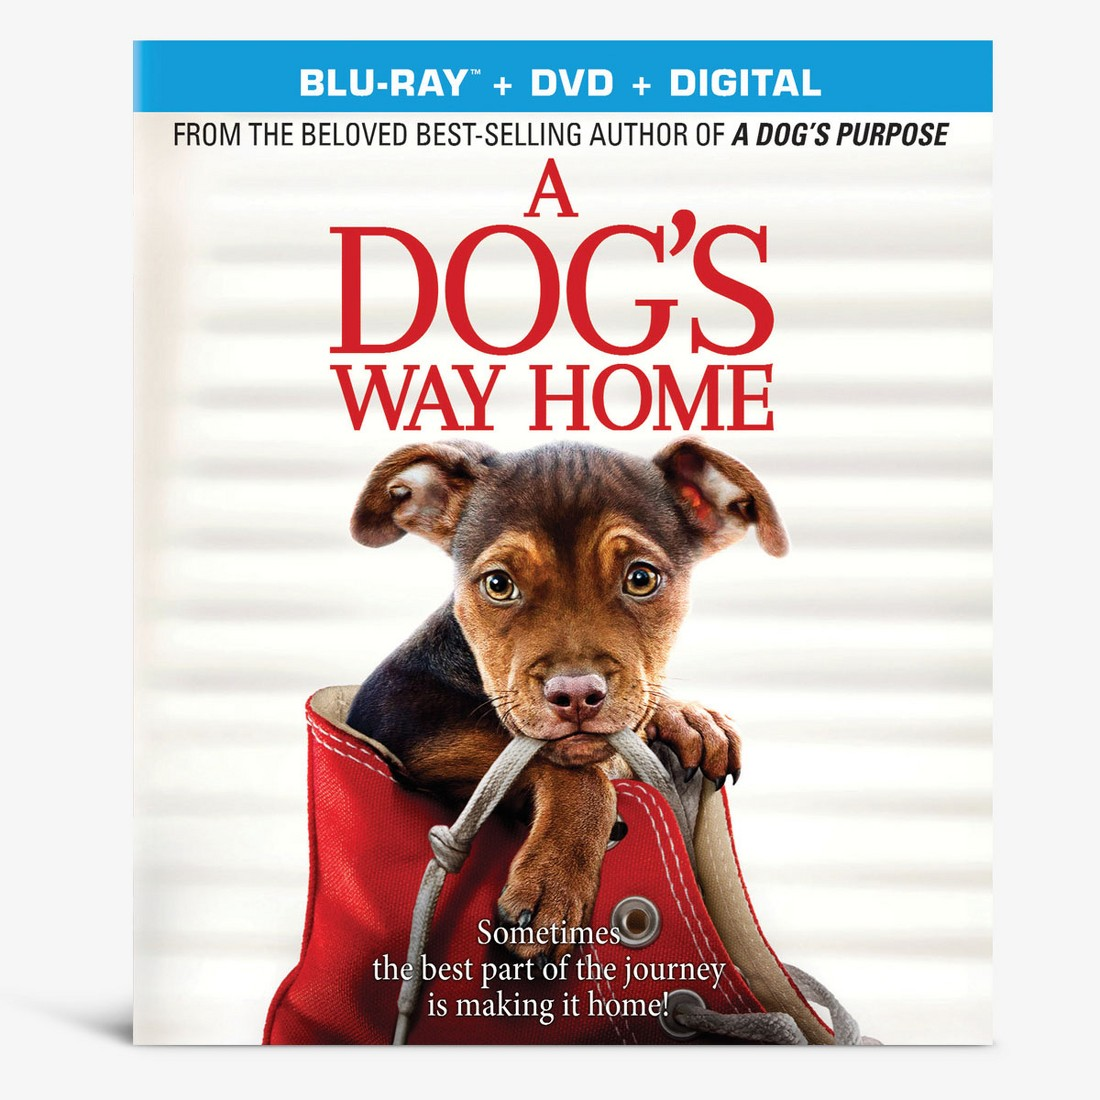 A Dog's Way Home. Blu-Ray + DVD + Digital